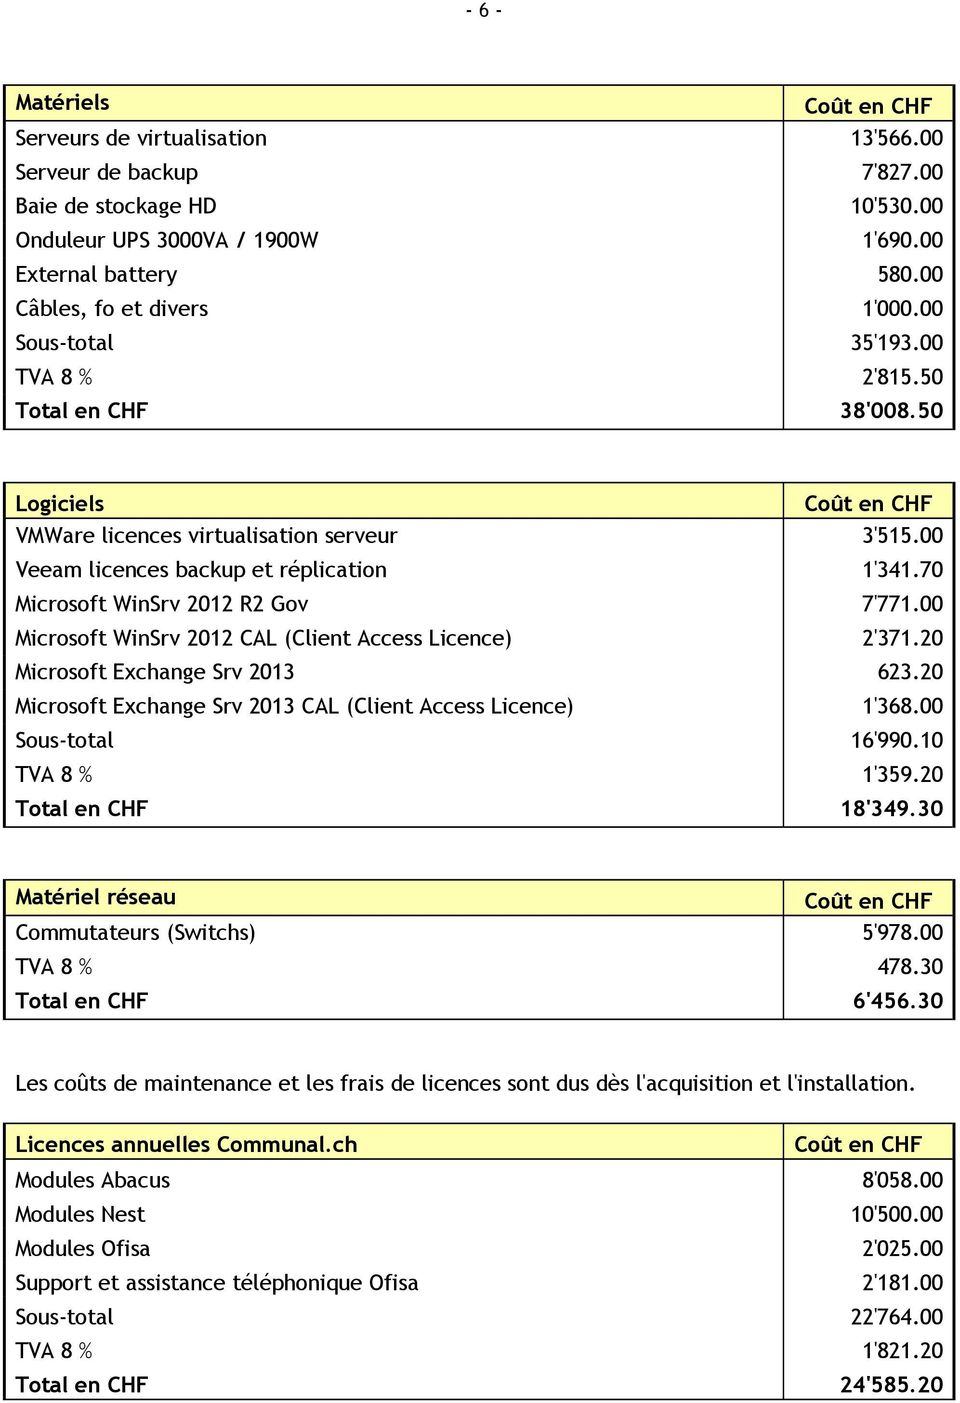 00 Microsoft WinSrv 2012 CAL (Client Access Licence) 2'371.20 Microsoft Exchange Srv 2013 623.20 Microsoft Exchange Srv 2013 CAL (Client Access Licence) 1'368.00 16'990.10 TVA 8 % 1'359.20 18'349.